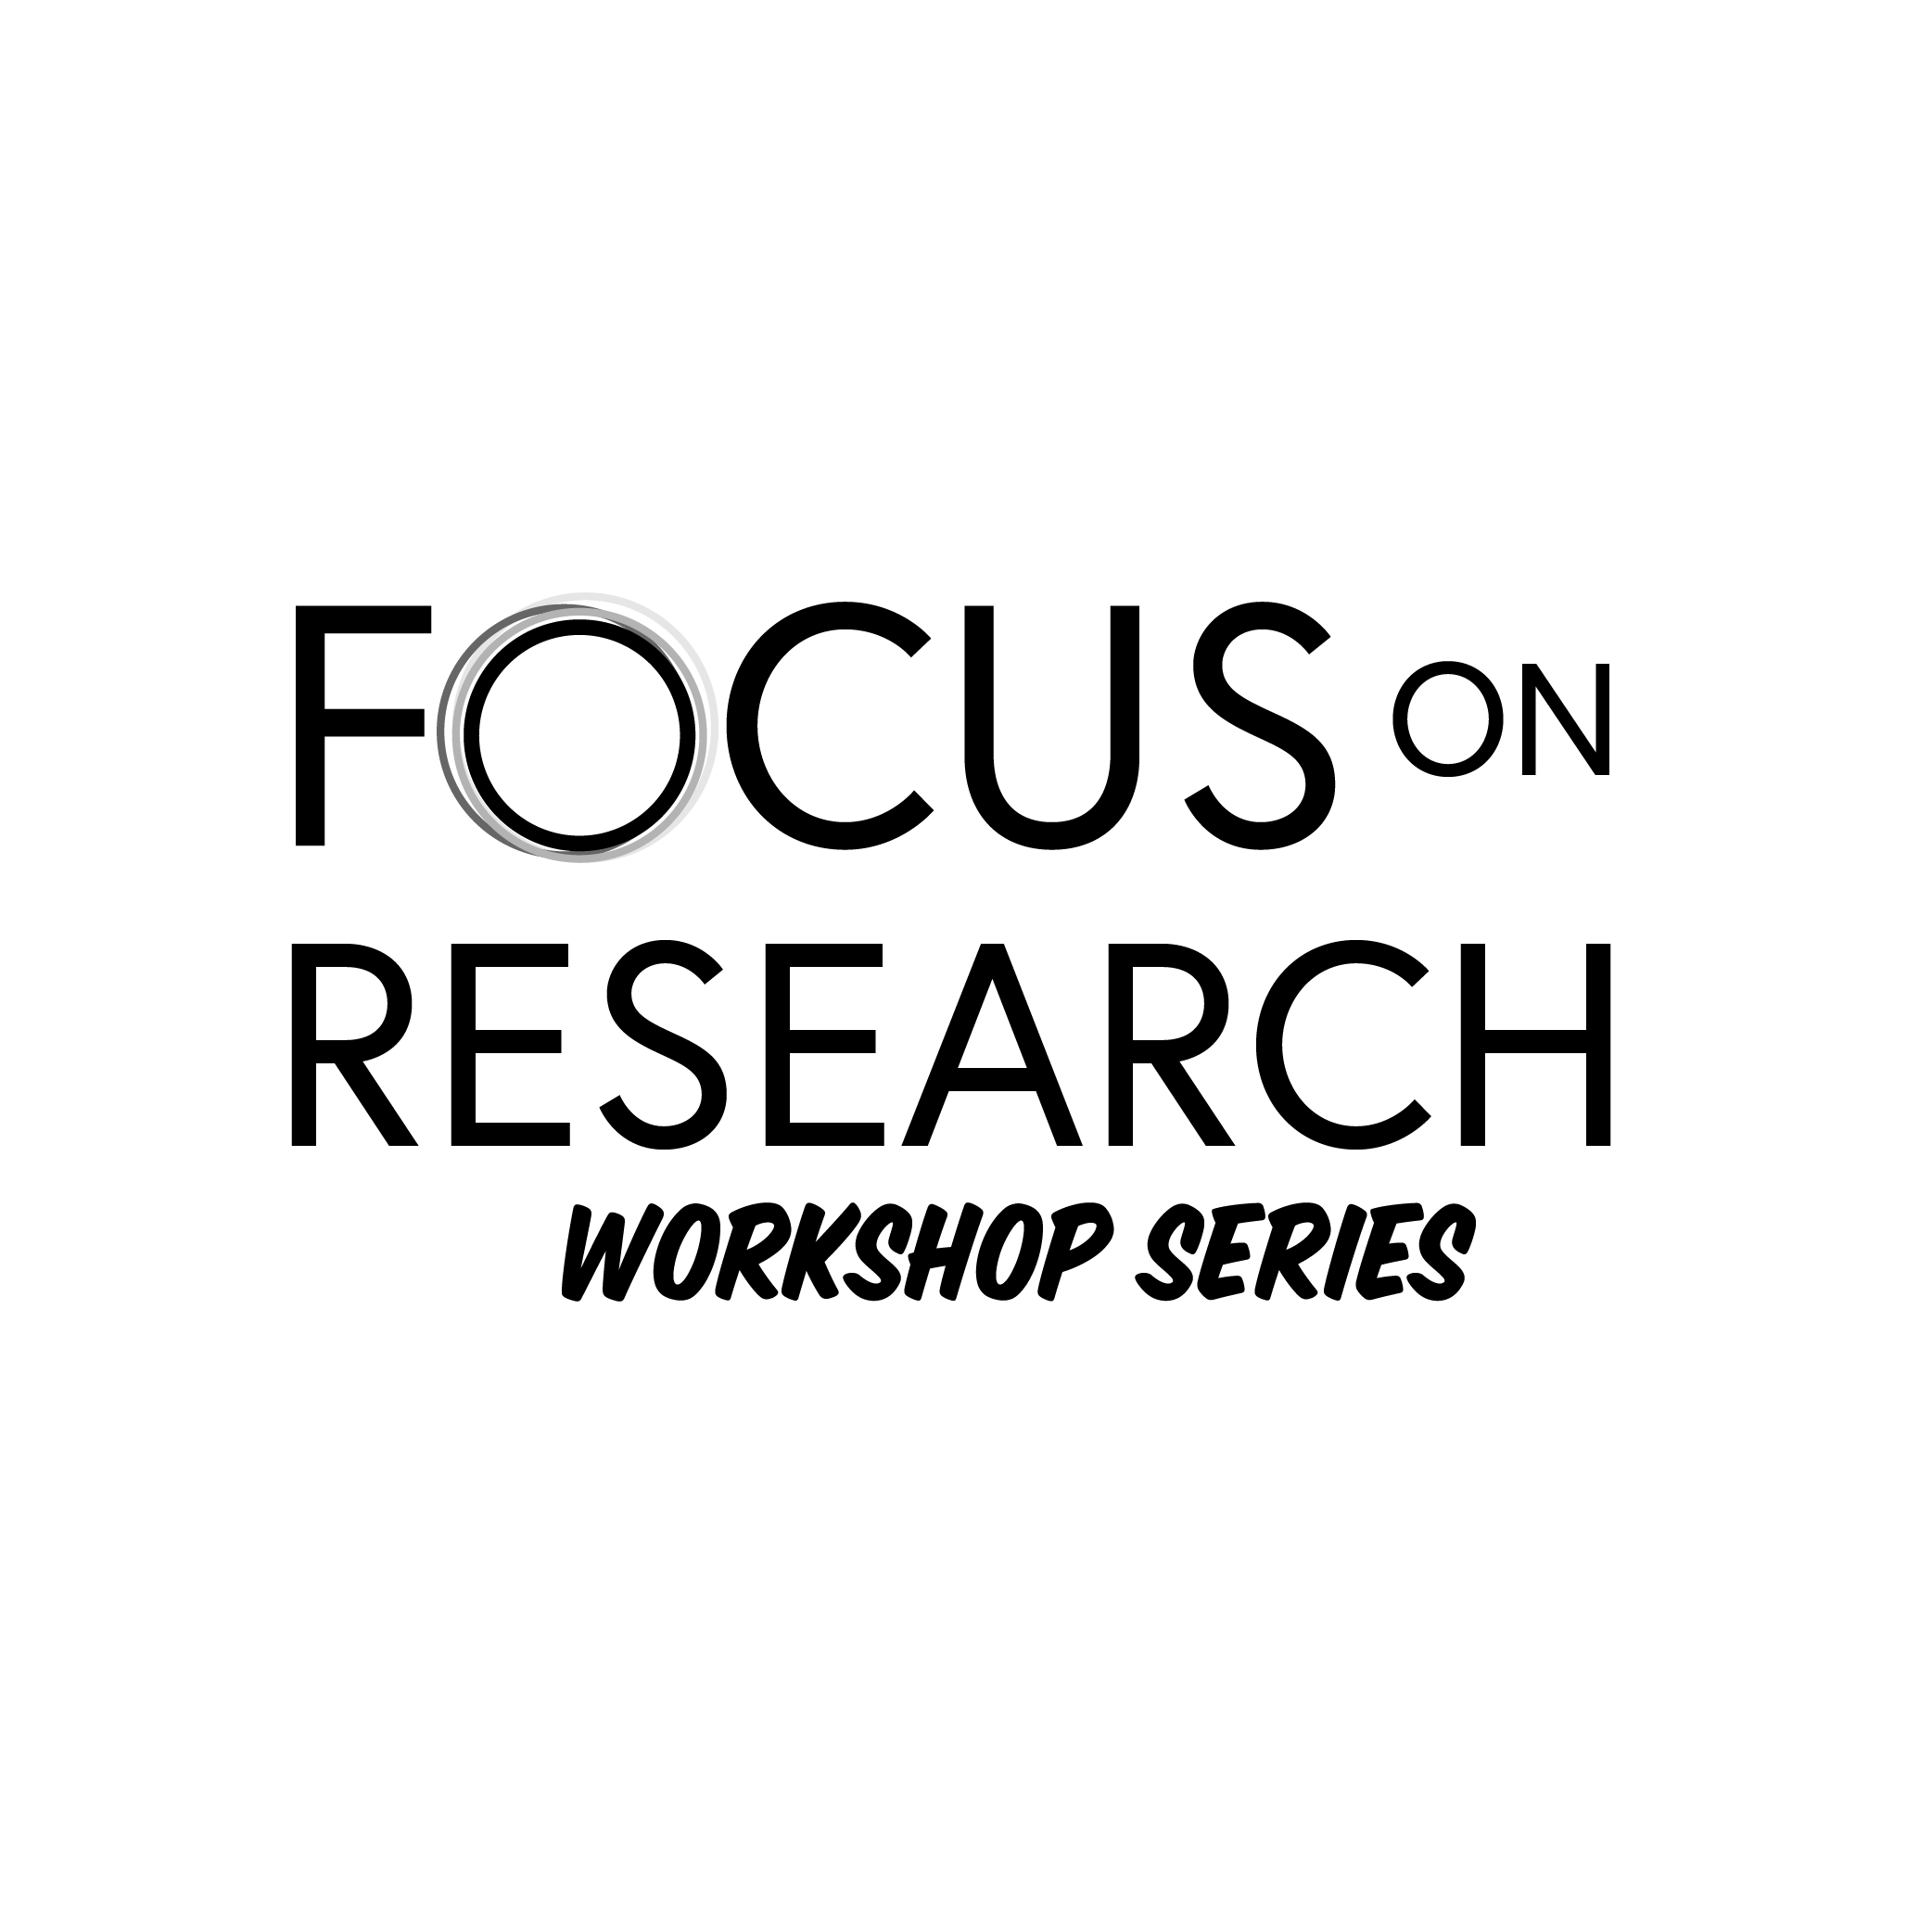 Focus on Research Workshop Series